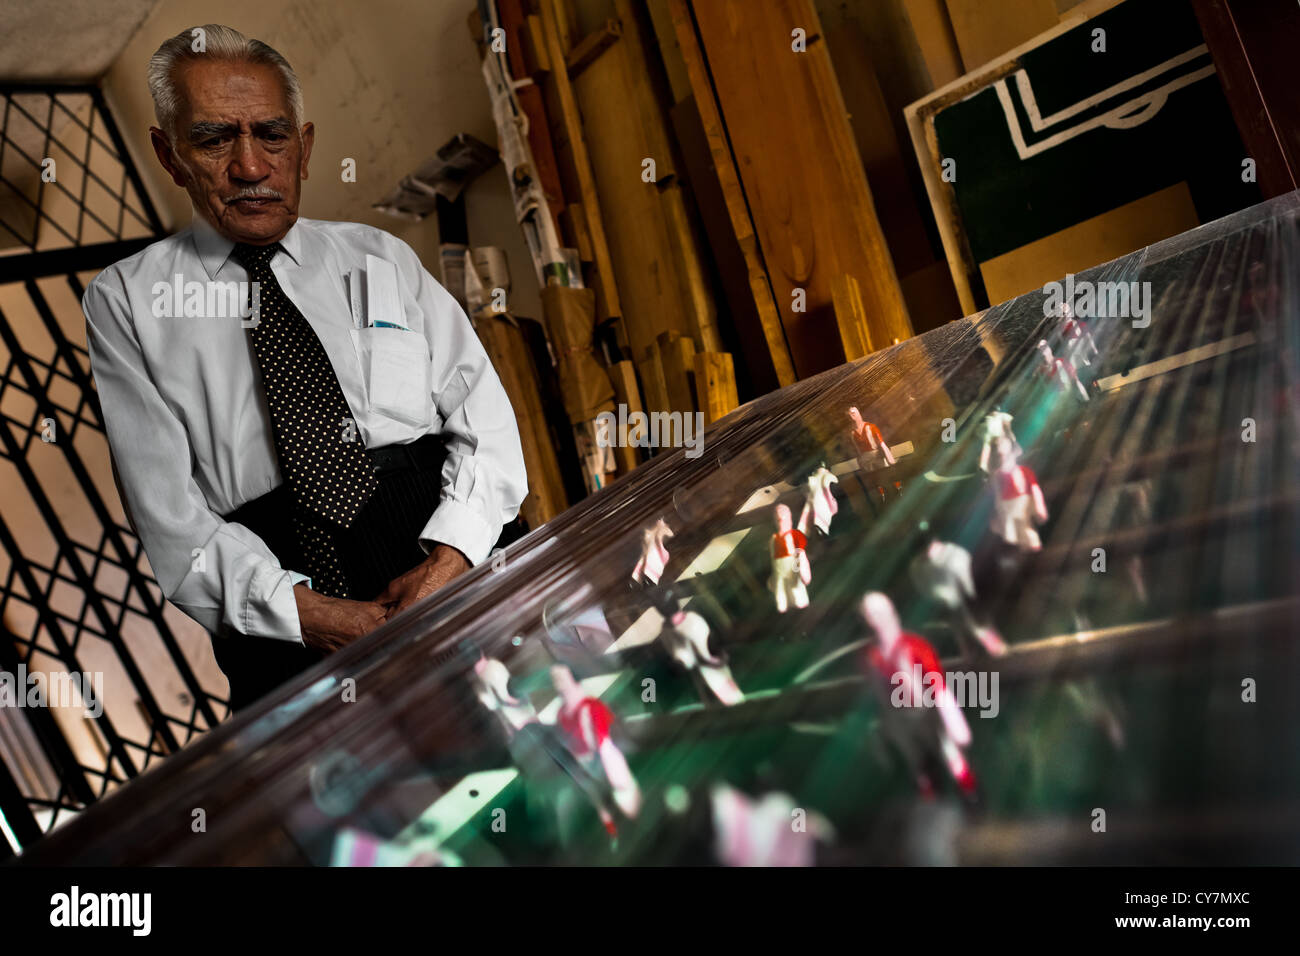 Efraín Cepeda, a table football workshop owner, poses for a picture with the finished table in his workshop, - Stock Image